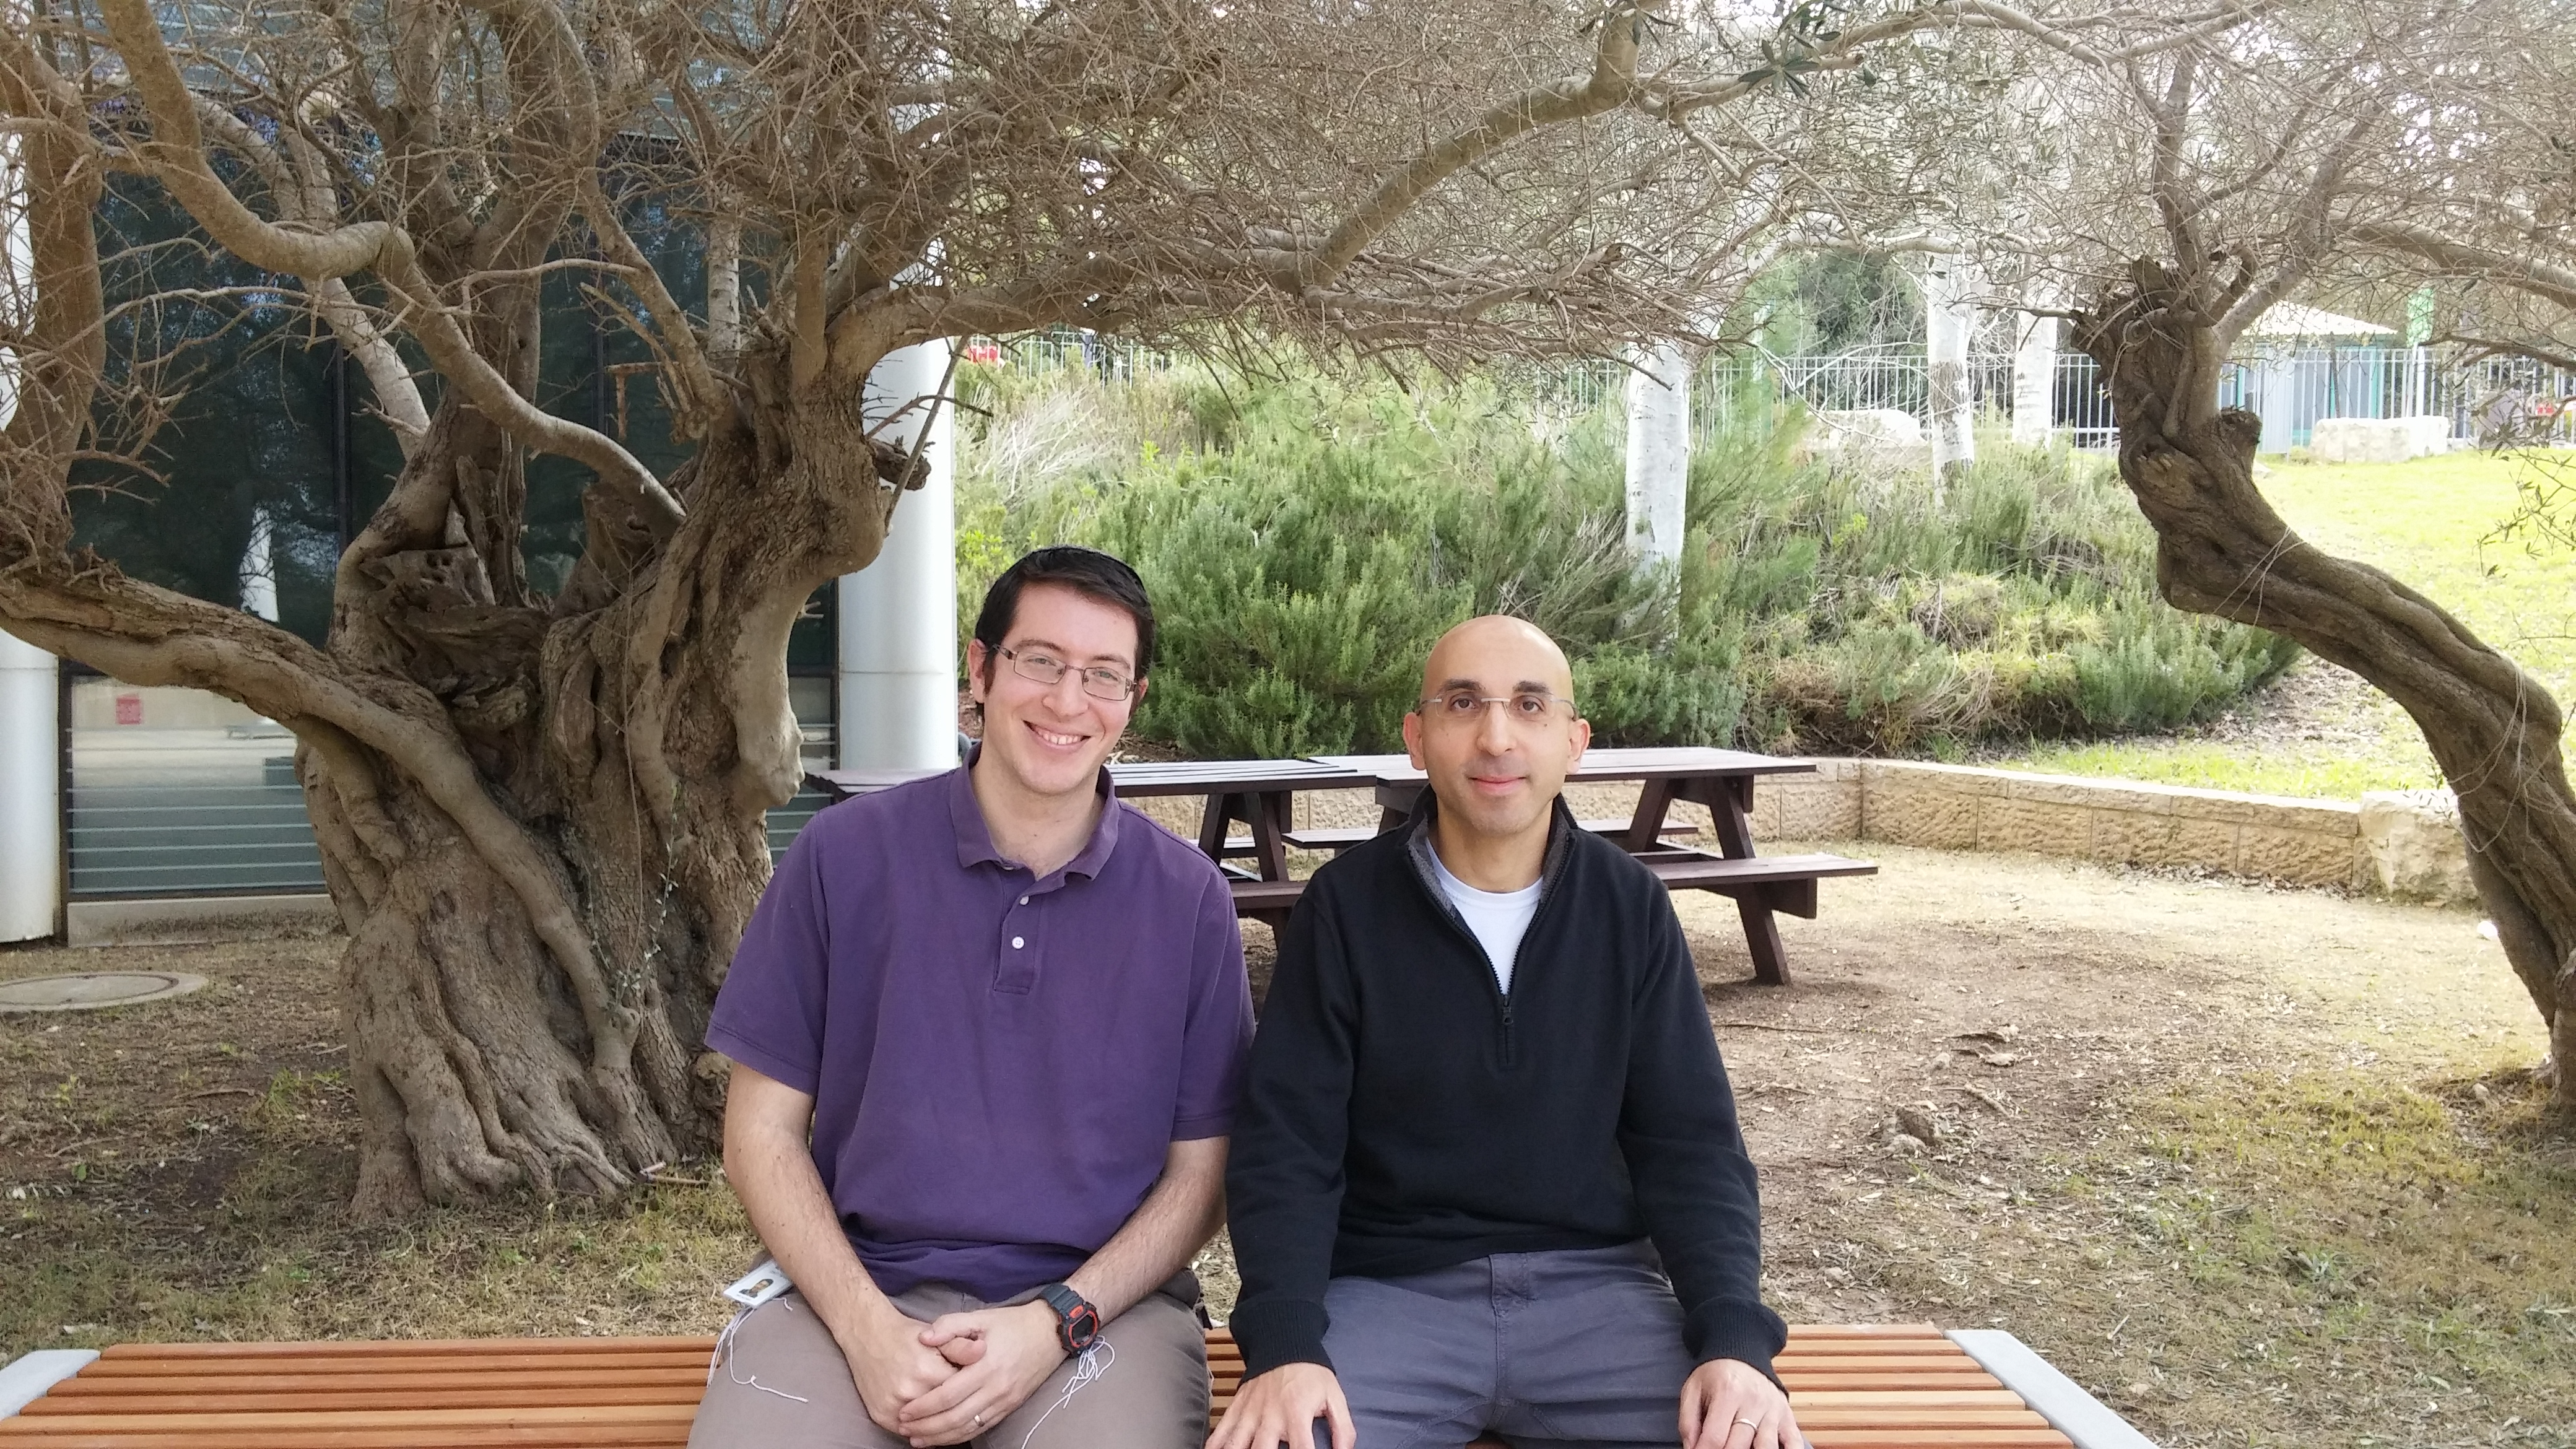 Haifa researchers Dror Porat and Daniel Rotman